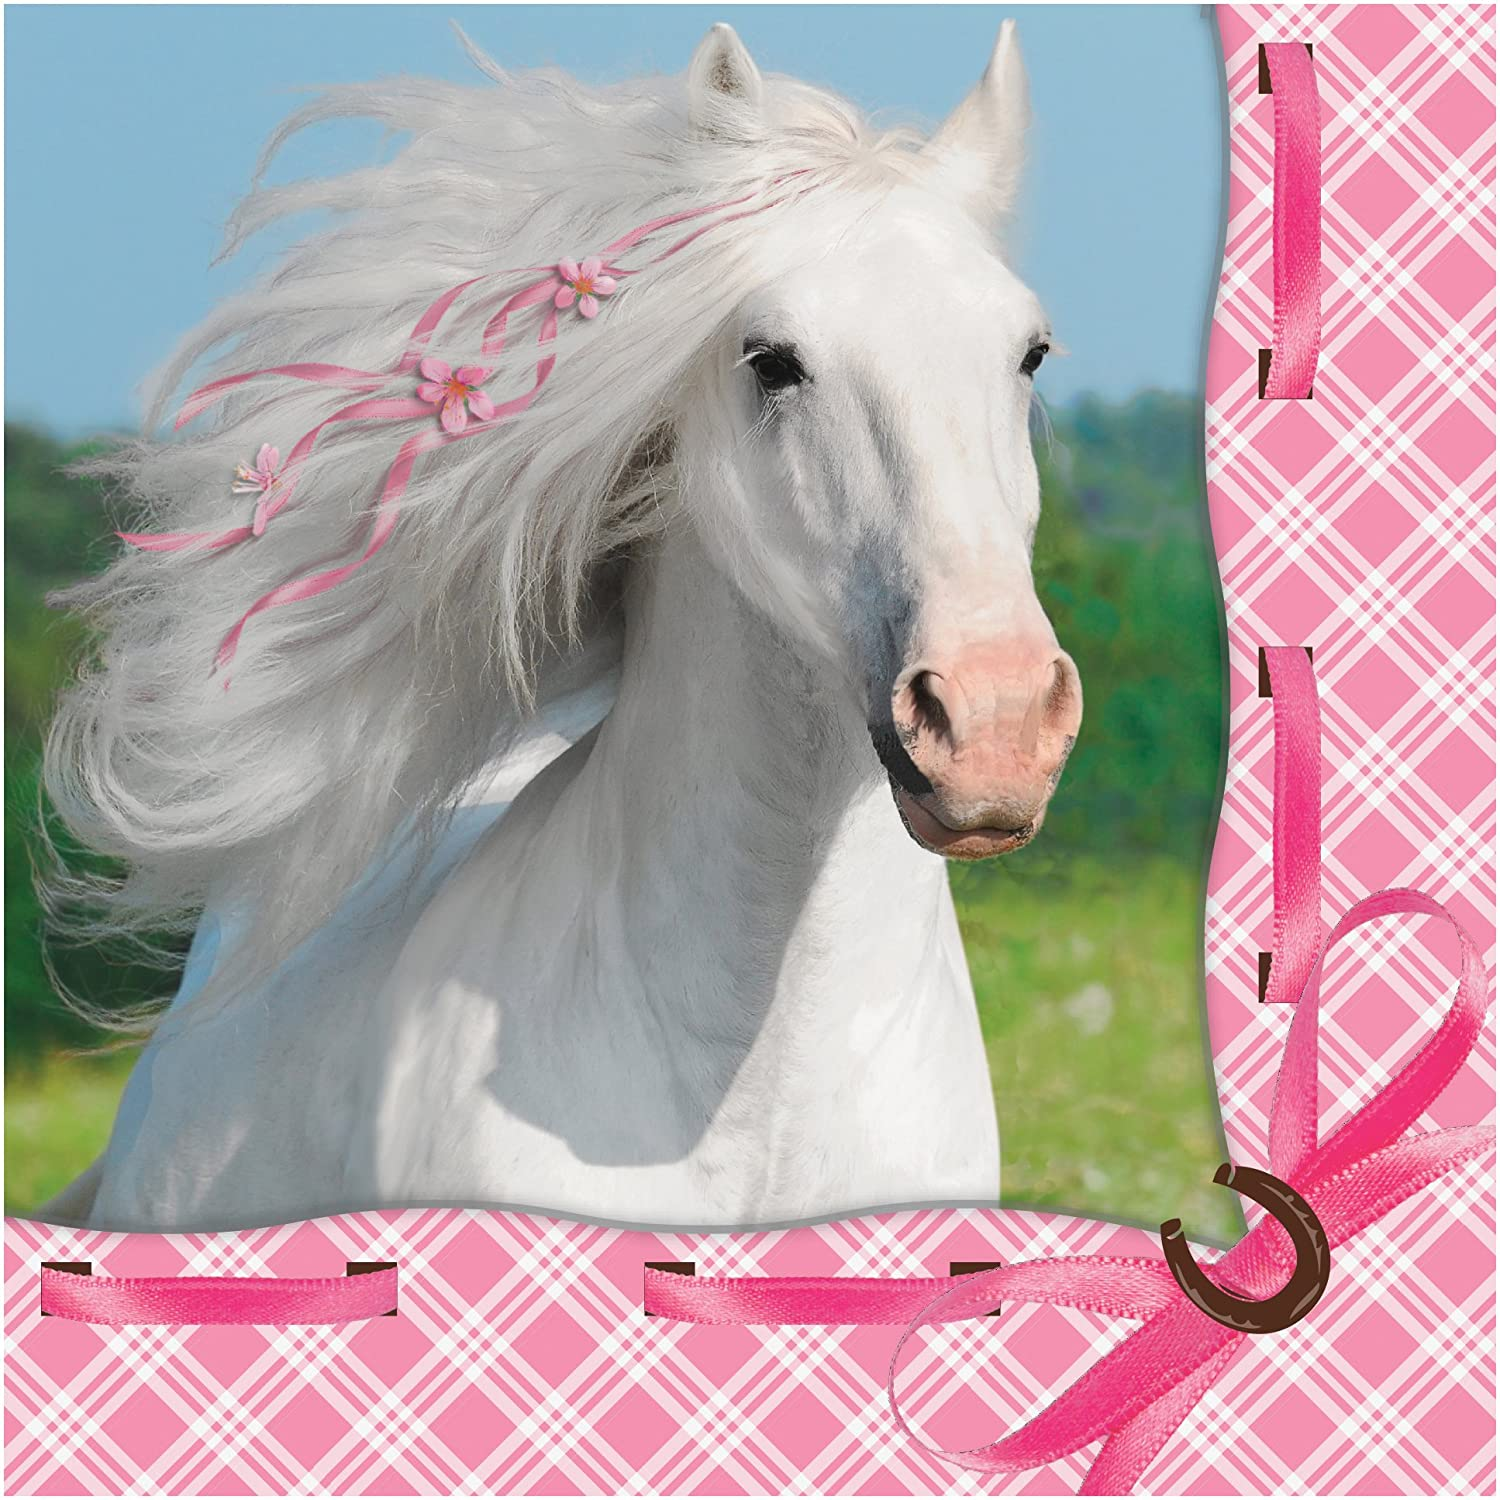 Creative Converting 16 Count 3 Ply Heart My Horse Lunch Napkins, White/Pink by Creative Converting B00J4BAAEW